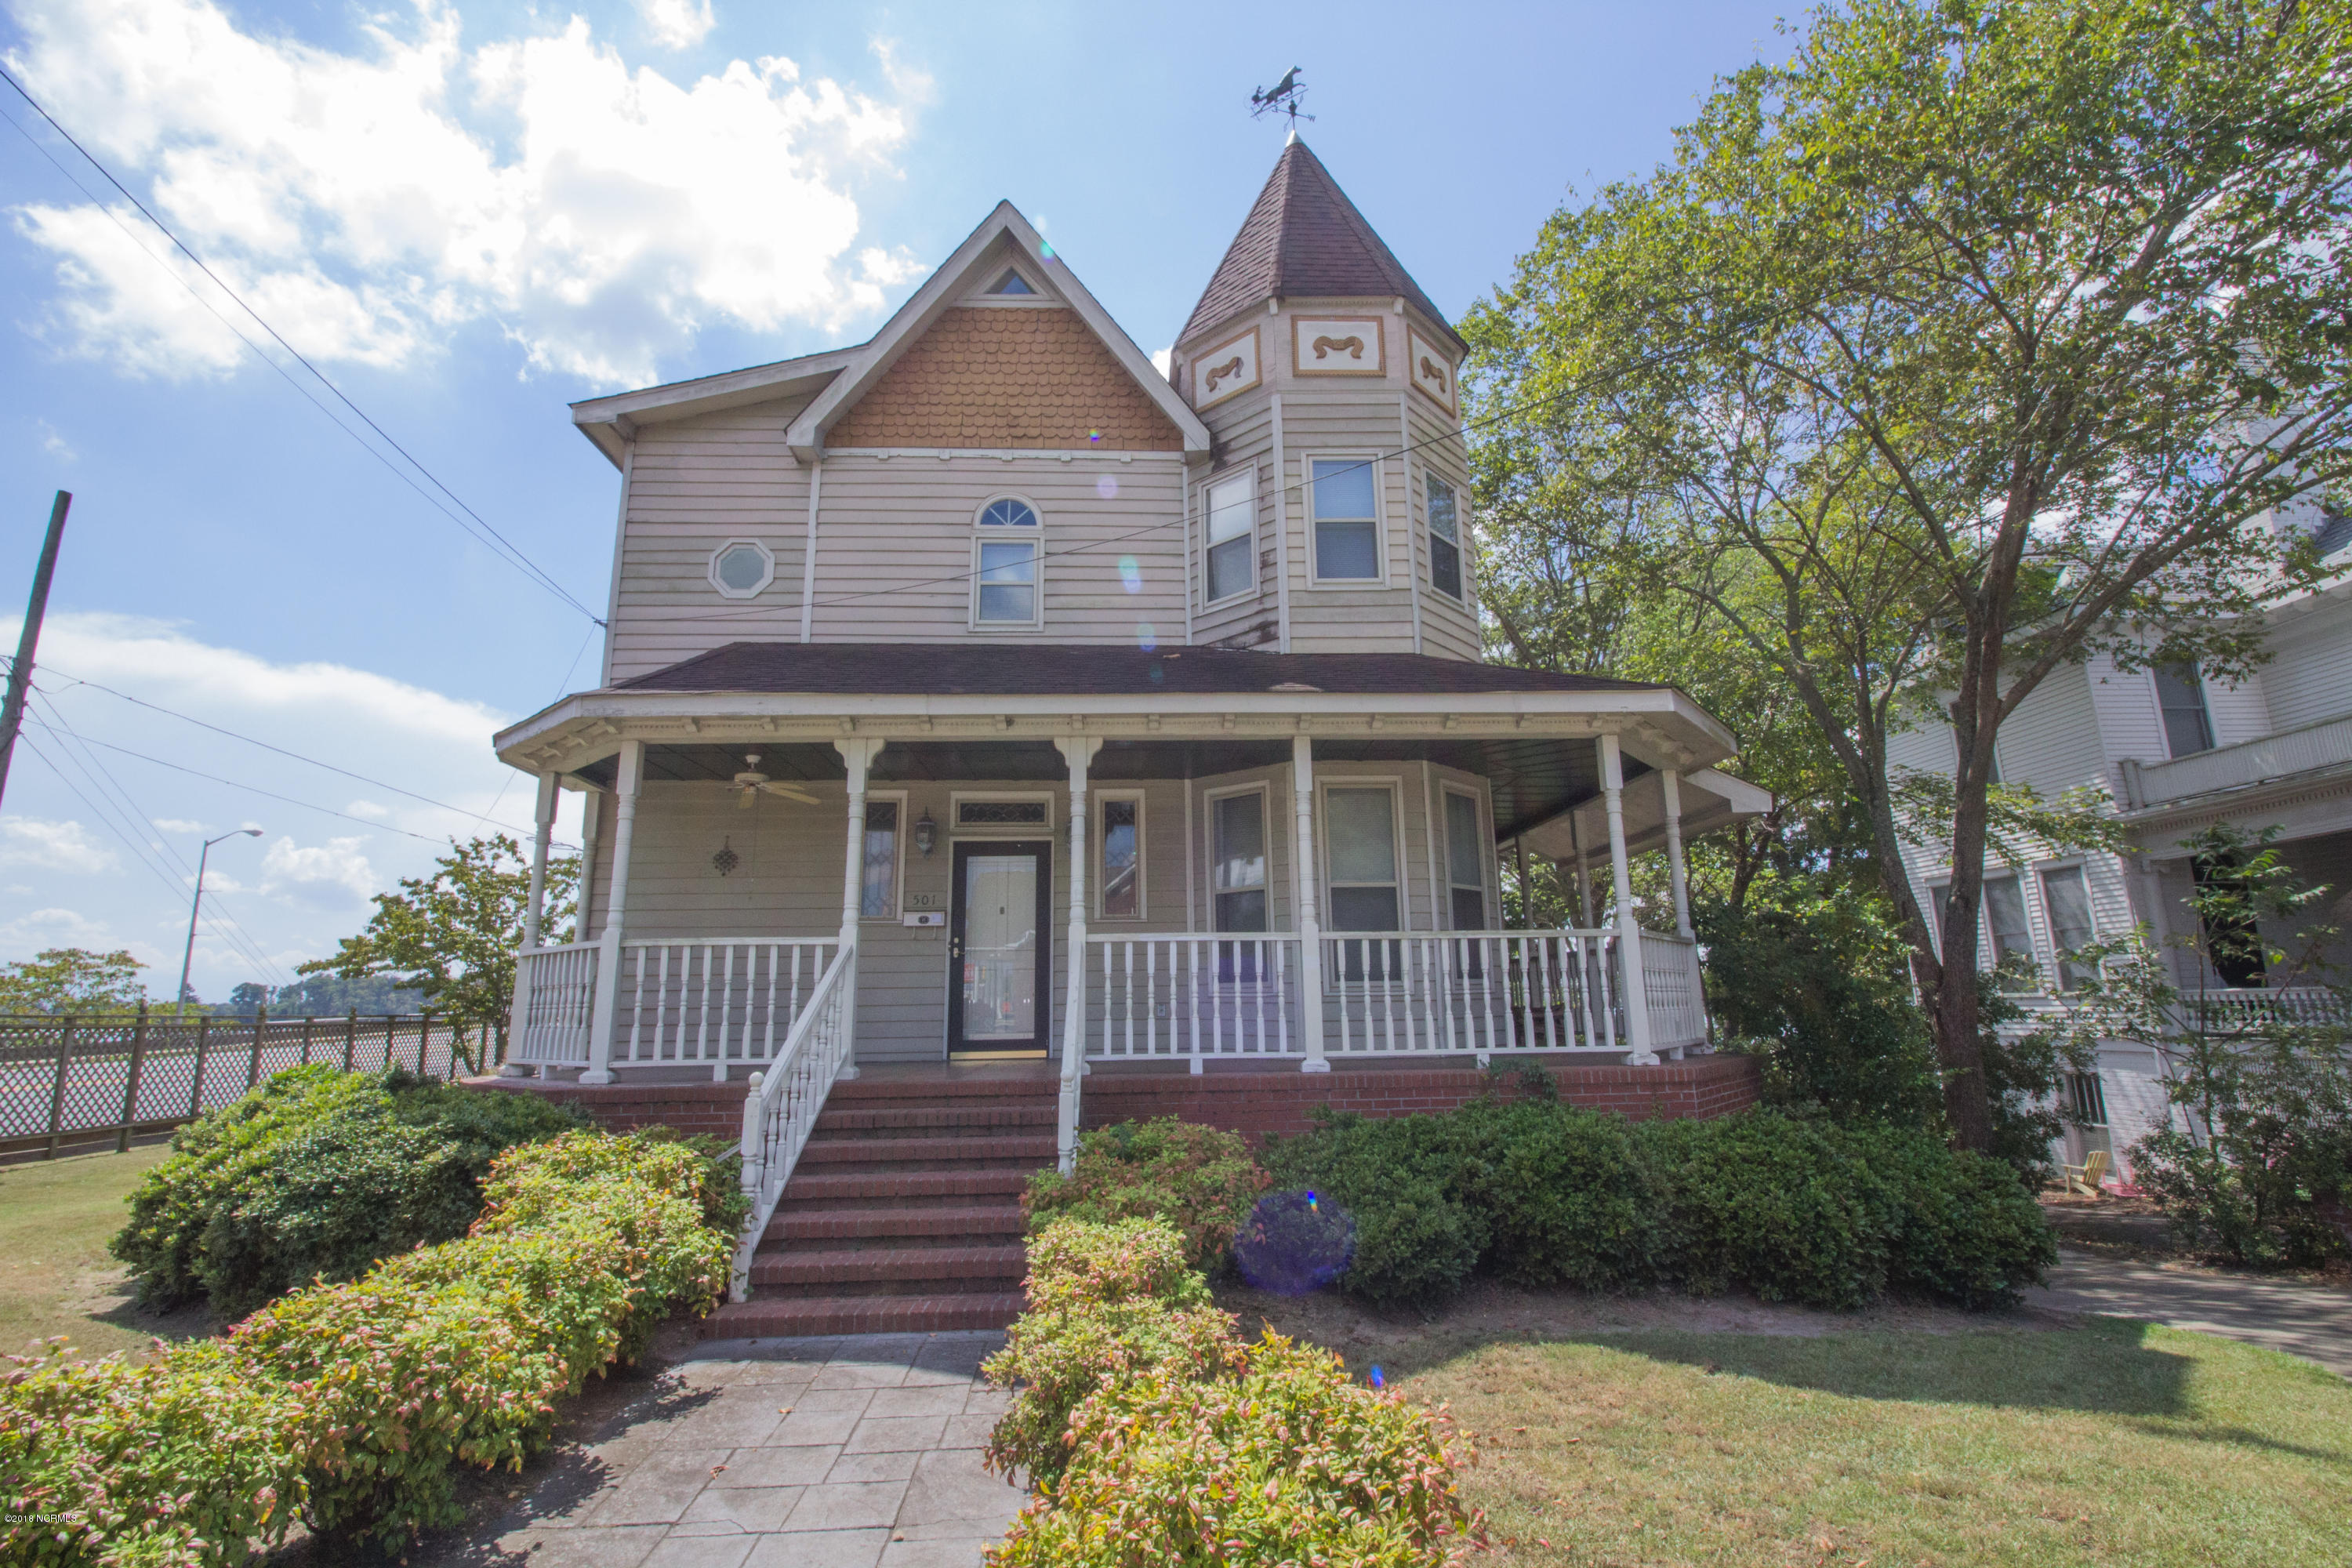 501 Main Street, Washington, North Carolina 27889, 4 Bedrooms Bedrooms, 9 Rooms Rooms,3 BathroomsBathrooms,Single family residence,For sale,Main,100133880